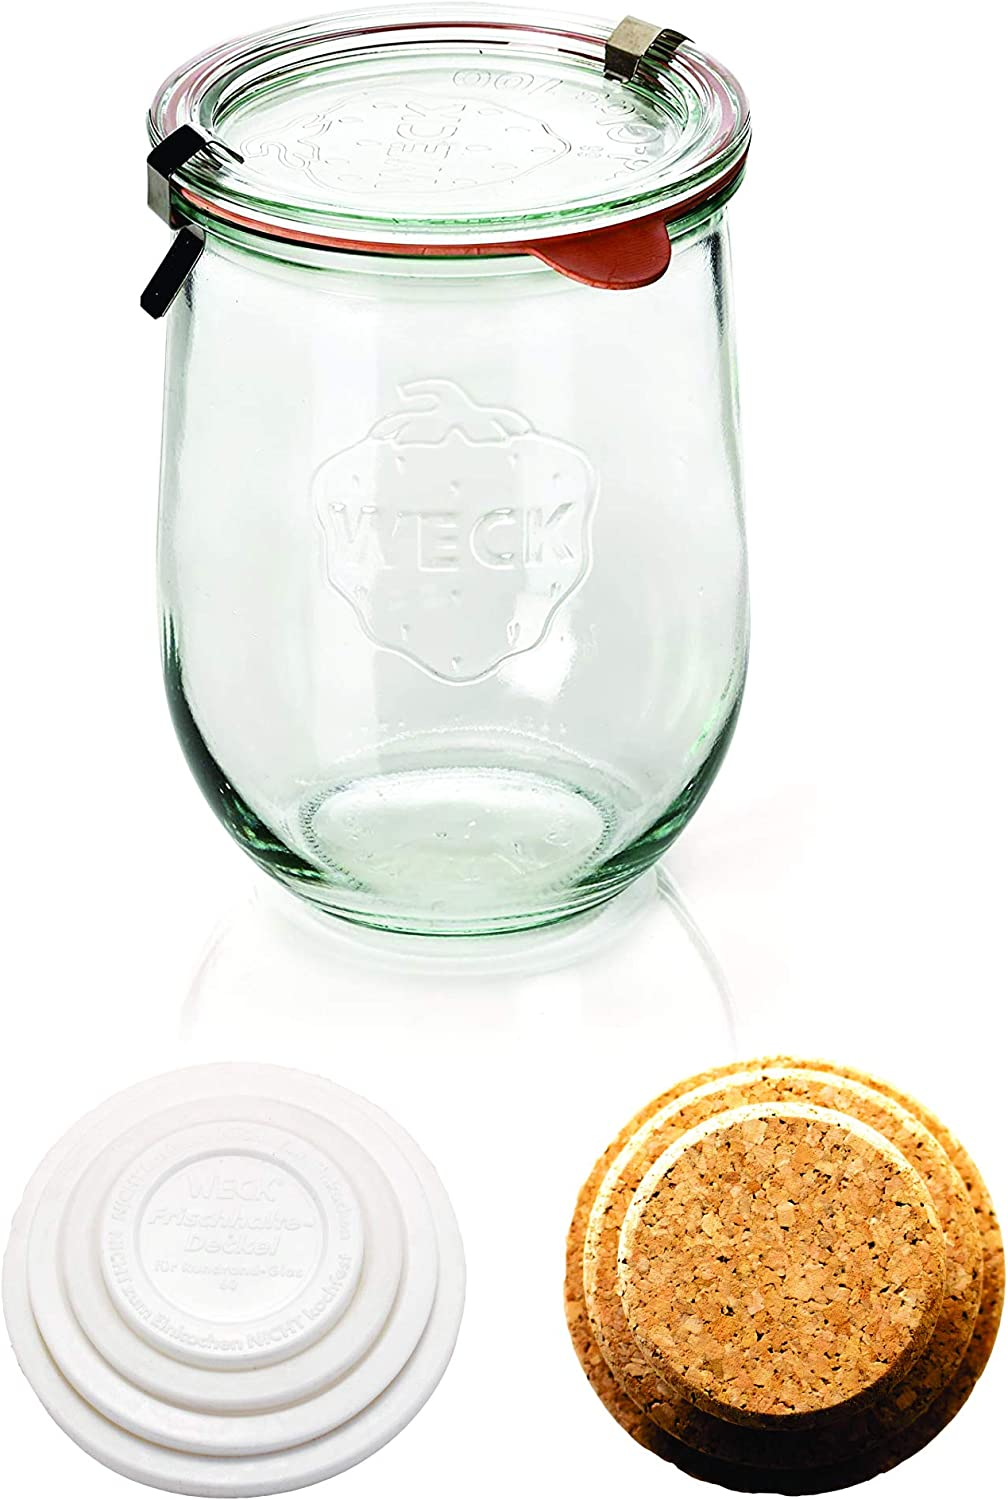 Weck Tulip Jars - Sour Dough Starter Jars - Large Glass Jars for Sourdough - Starter Jar with Glass Lid - Tulip Jar with Wide Mouth - Weck Jars 1 Liter Includes (Cork Lid & Keep Fresh Cover)